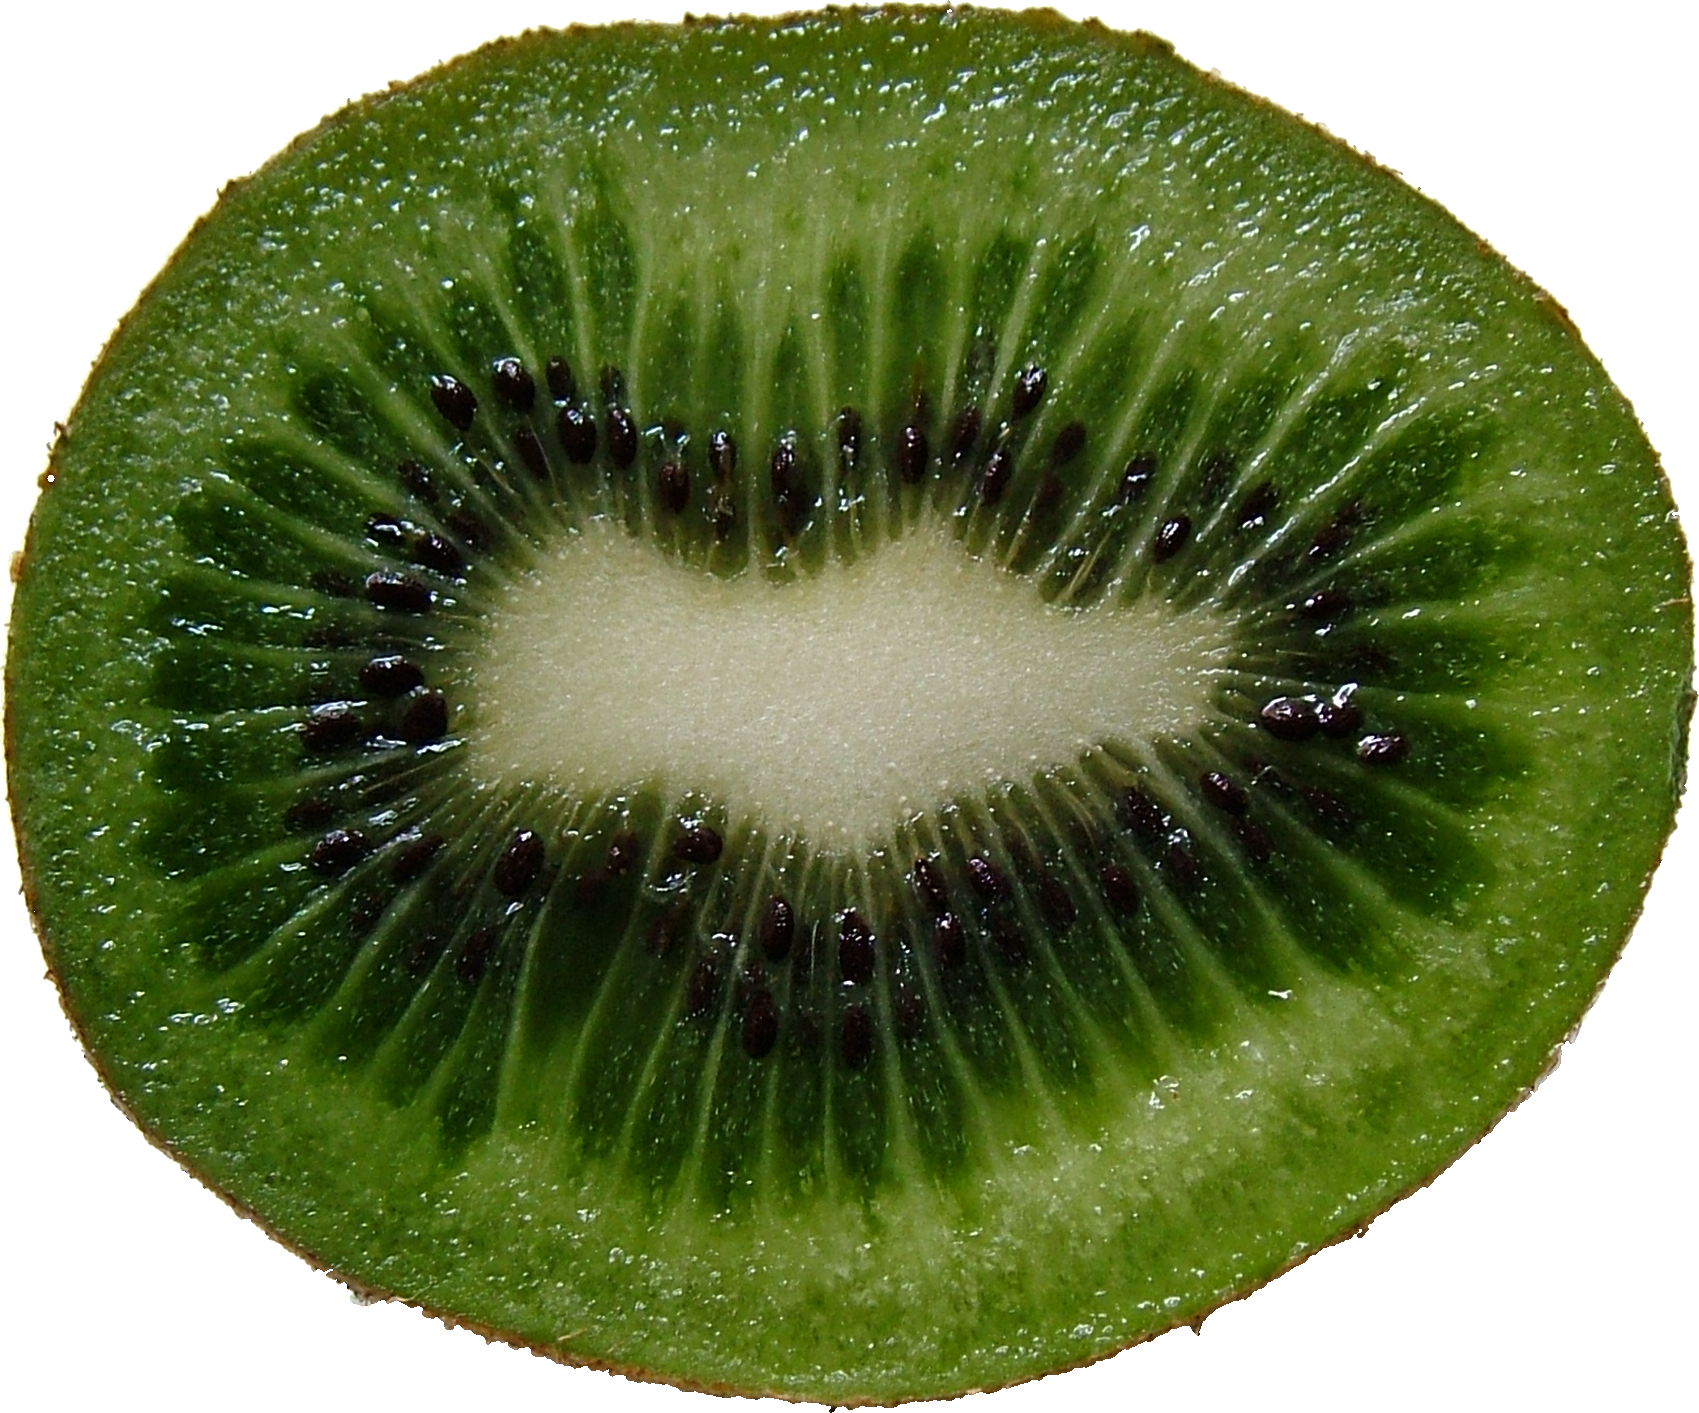 Png images free pictures. Kiwi clipart kind fruit